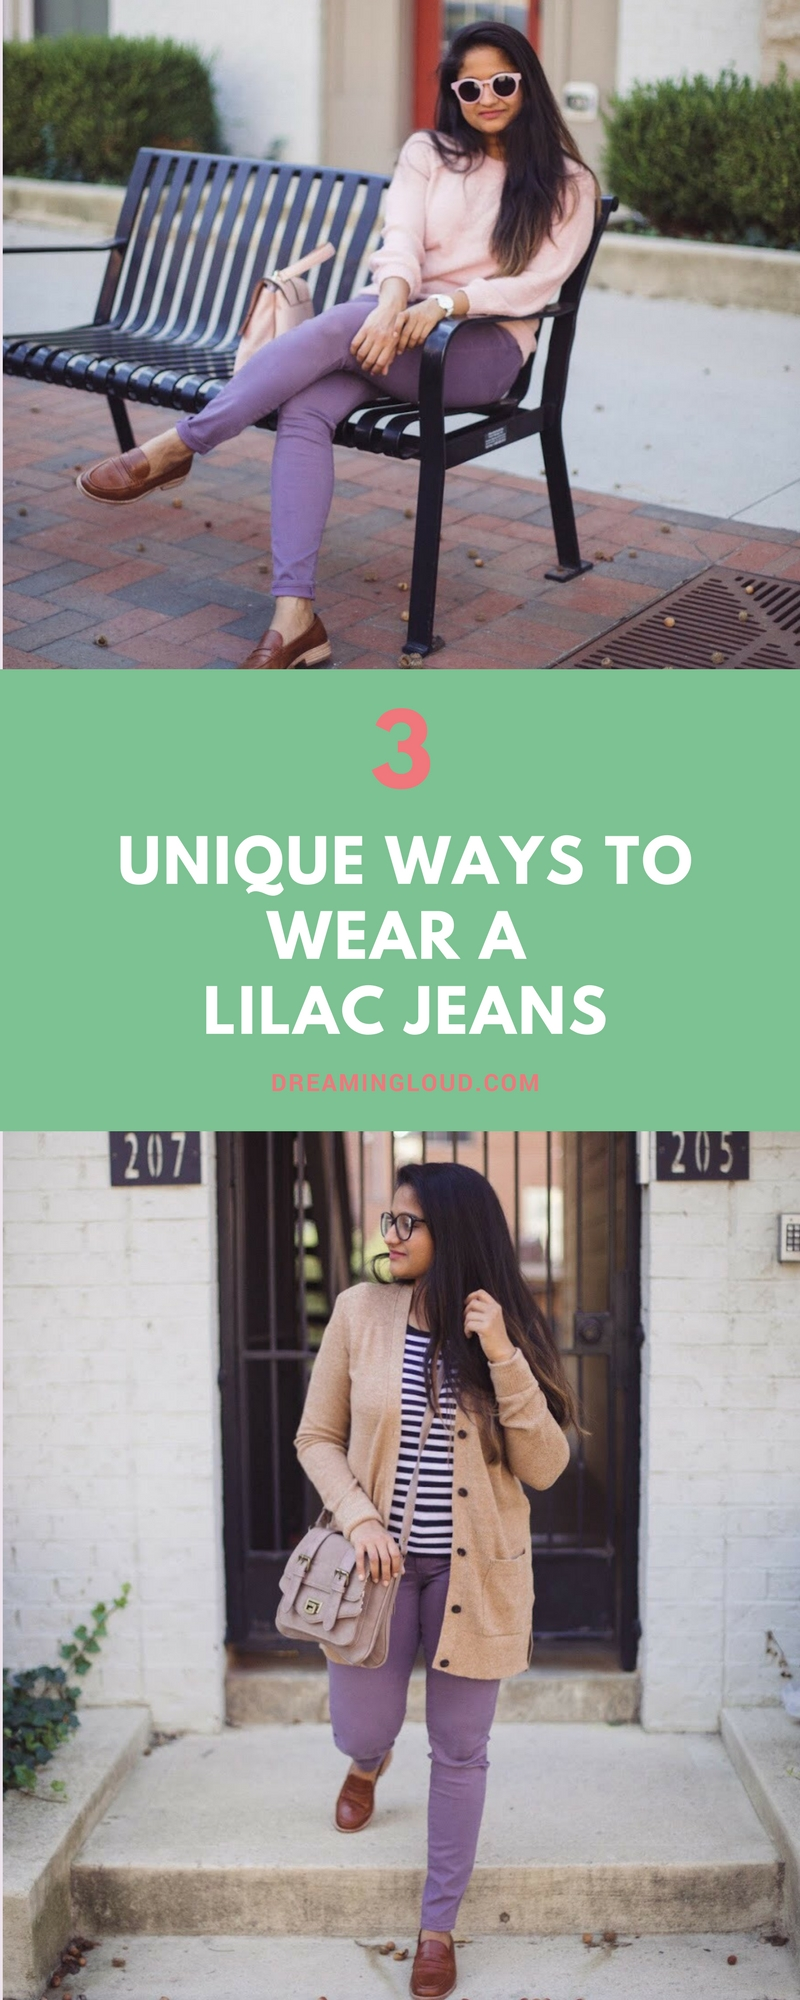 Lifestyle blogger Surekha of Dreaming Loud sharing 3 unique ways to wear lilac jeans